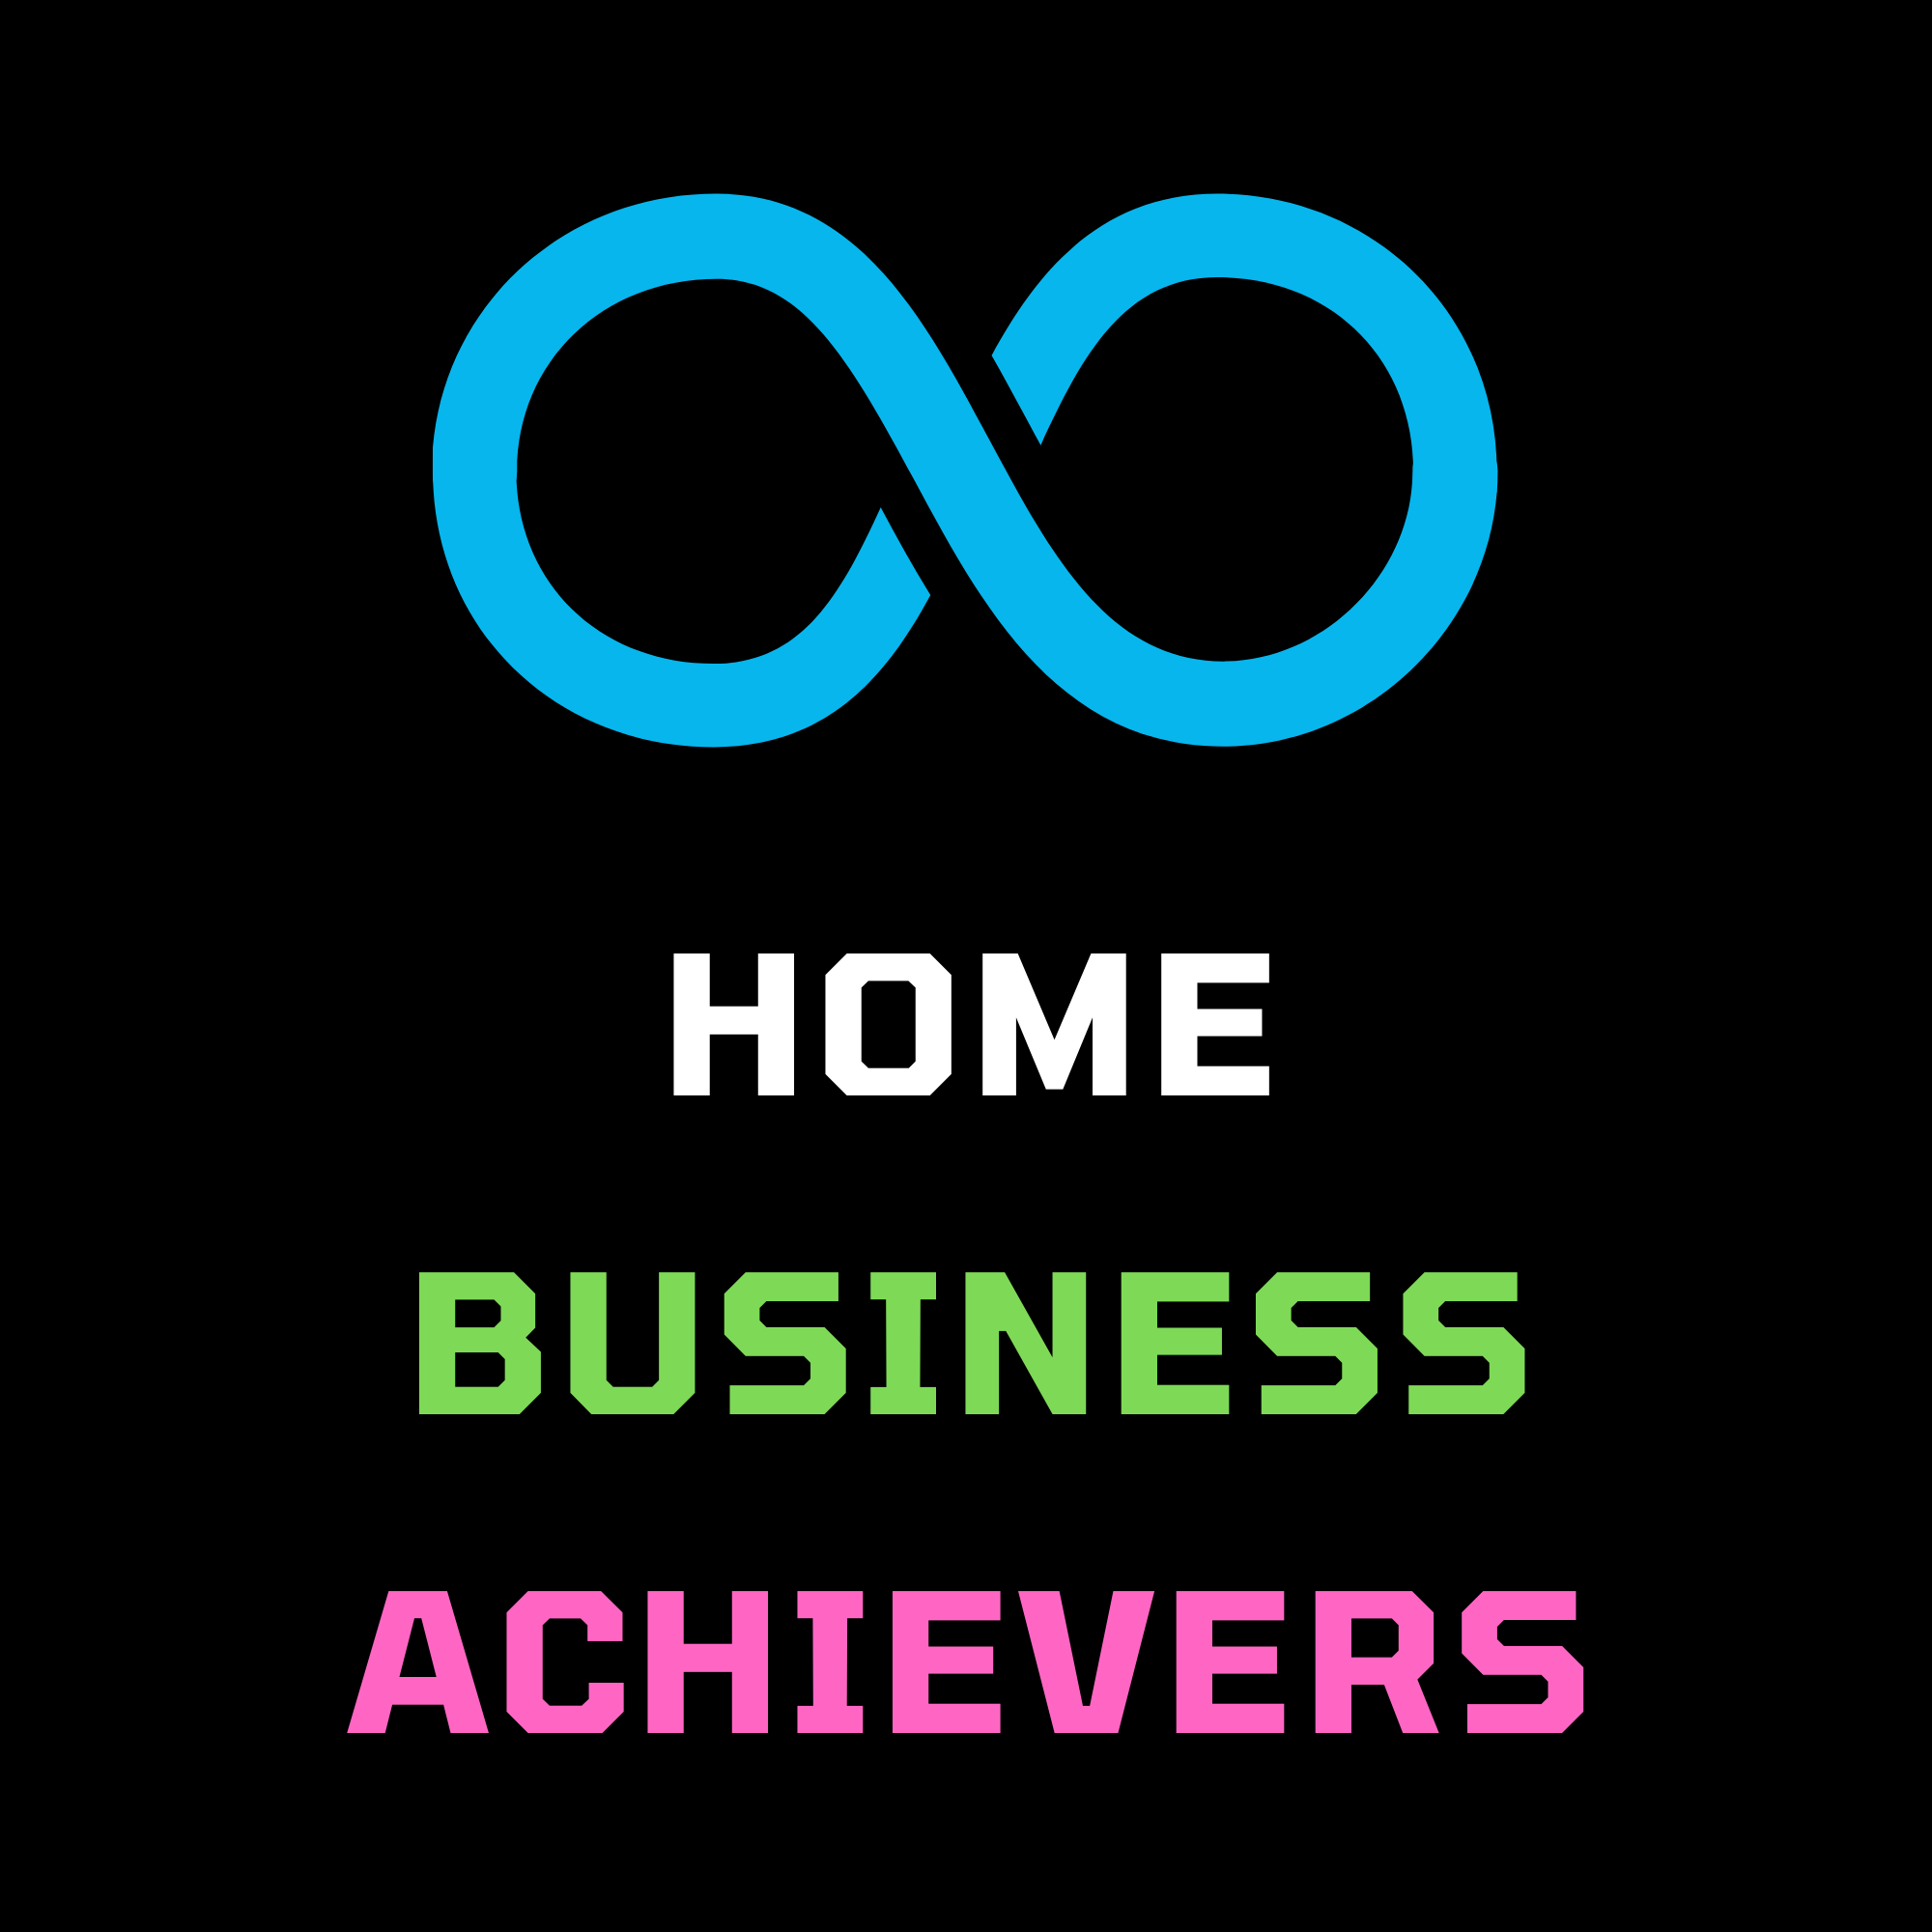 Home Business Achievers